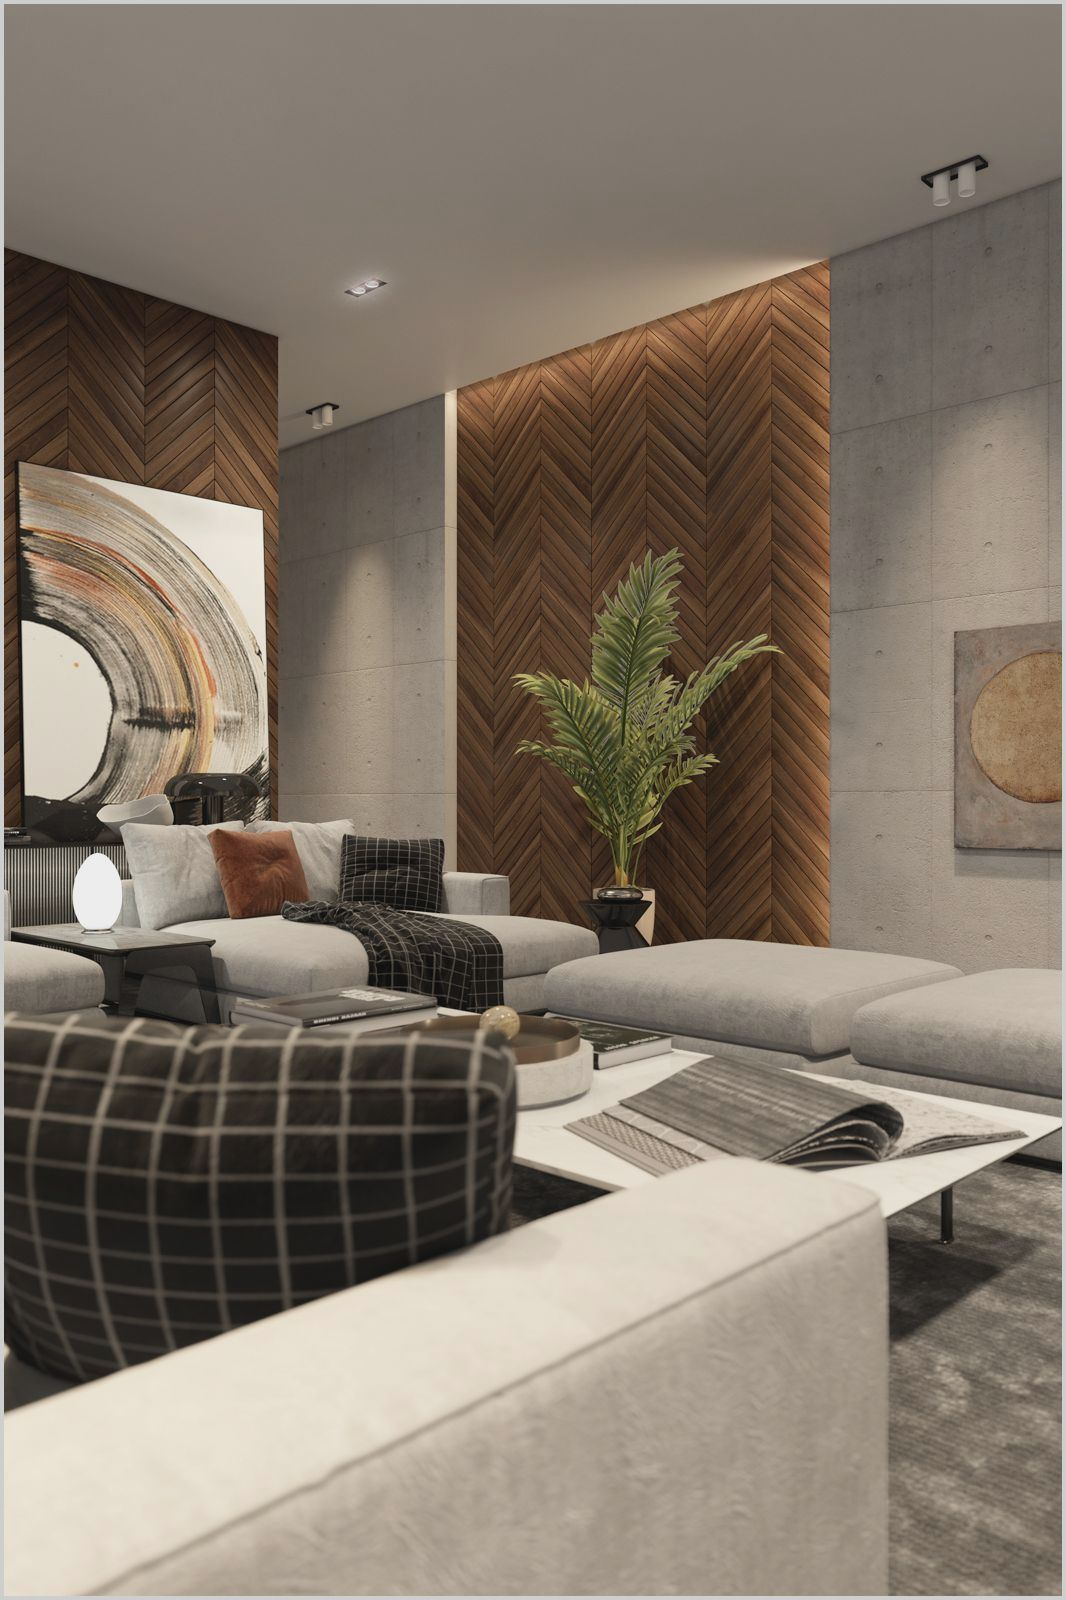 Decorating Bedroom With Wood Paneling In 2020 Living Room Wall Designs Living Room Panelling Drawing Room Interior